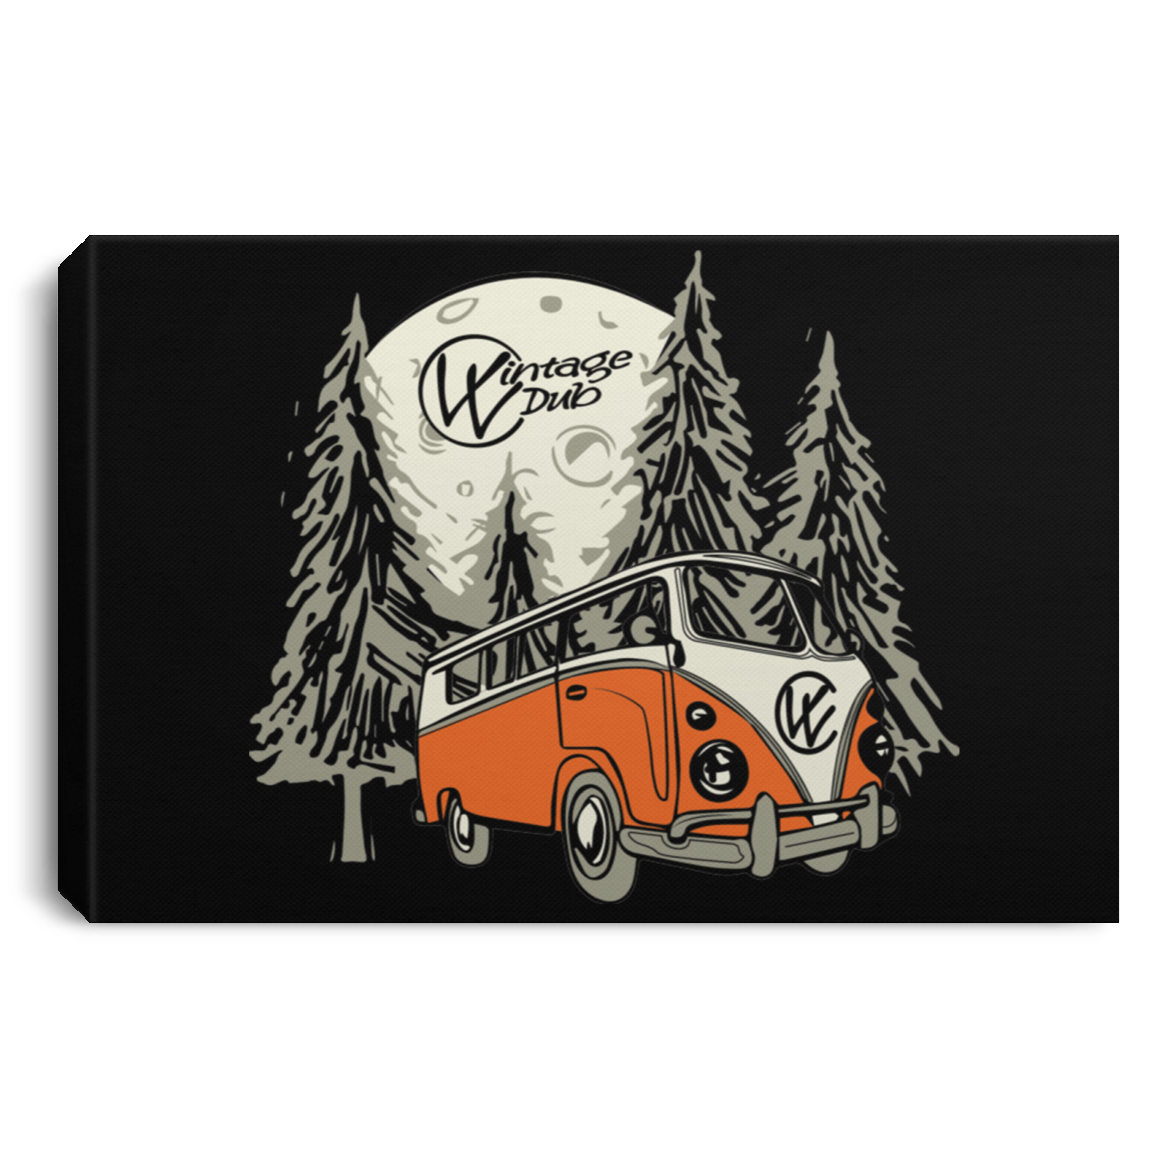 Moonlight Drive Framed Art 3 SIZES, - Aircooled VW - Vintage Vdub